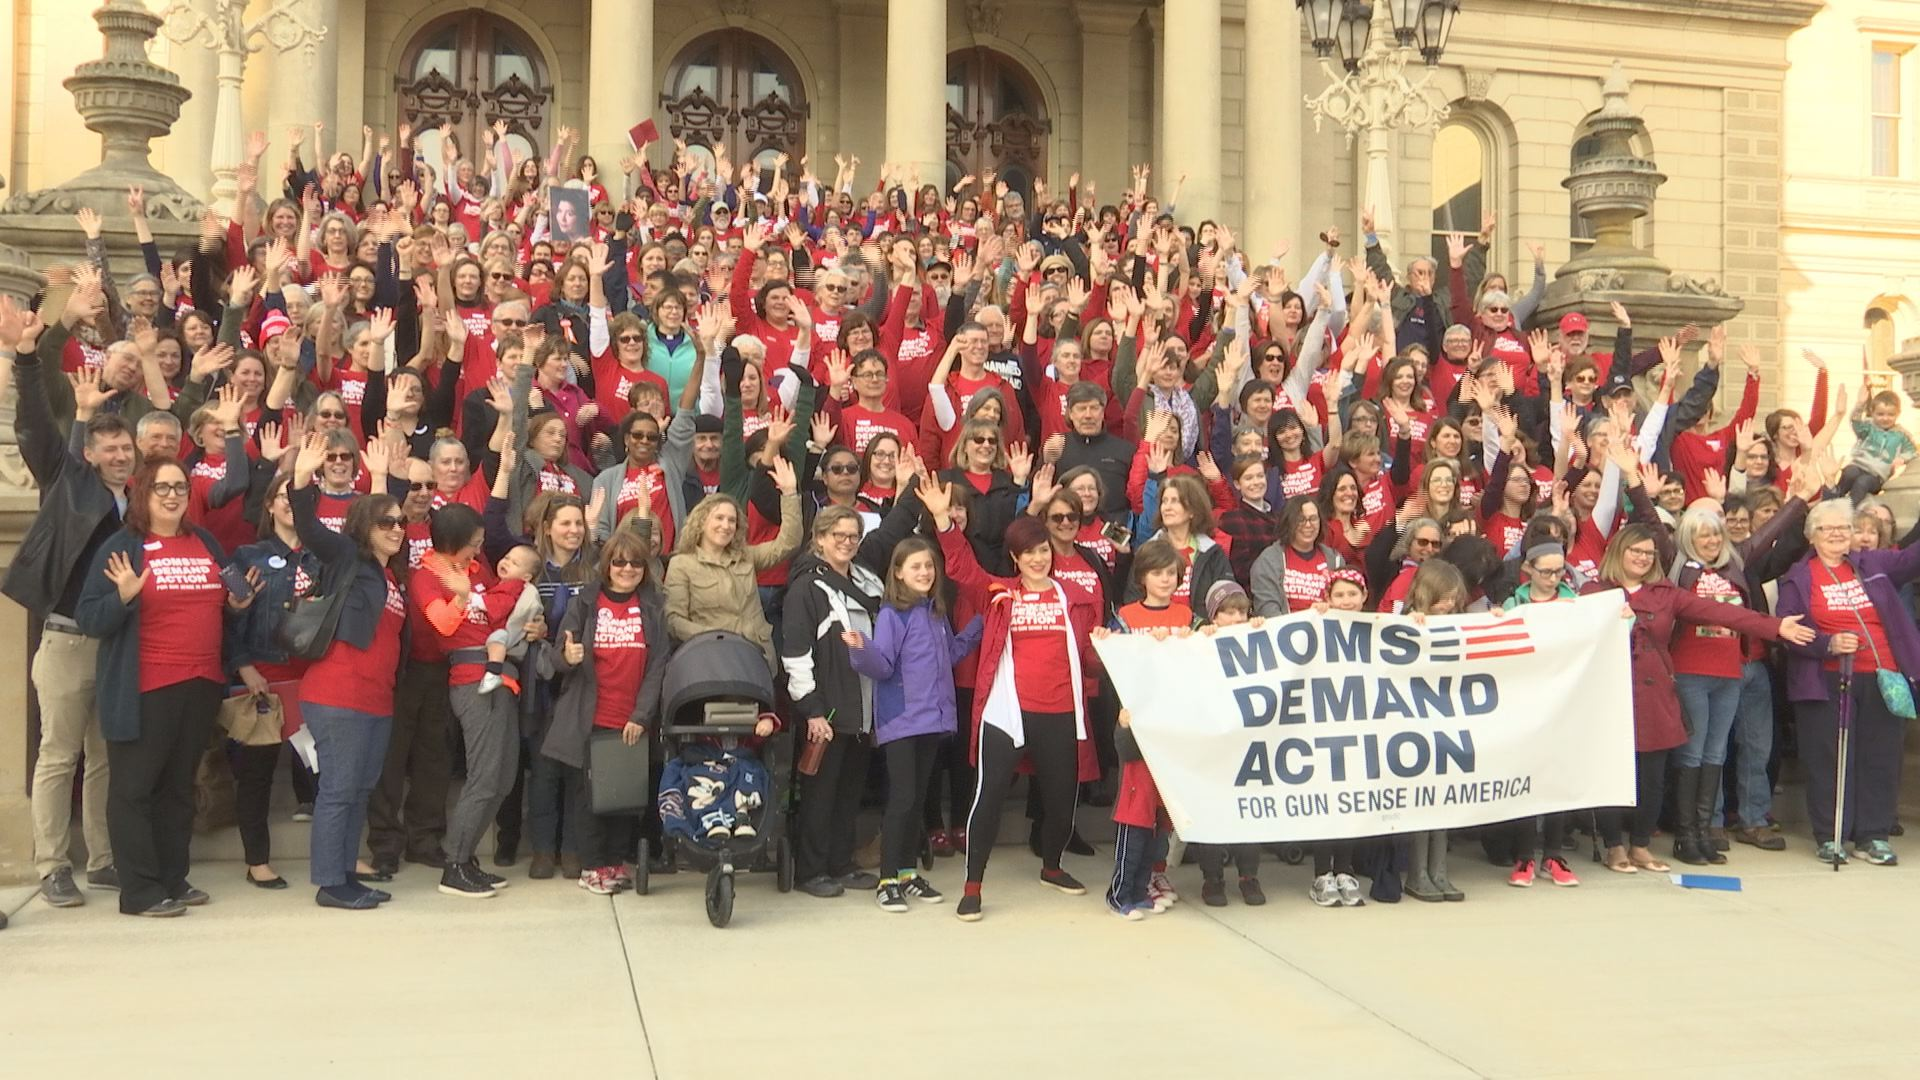 MOMS DEMAND ACTION_376981